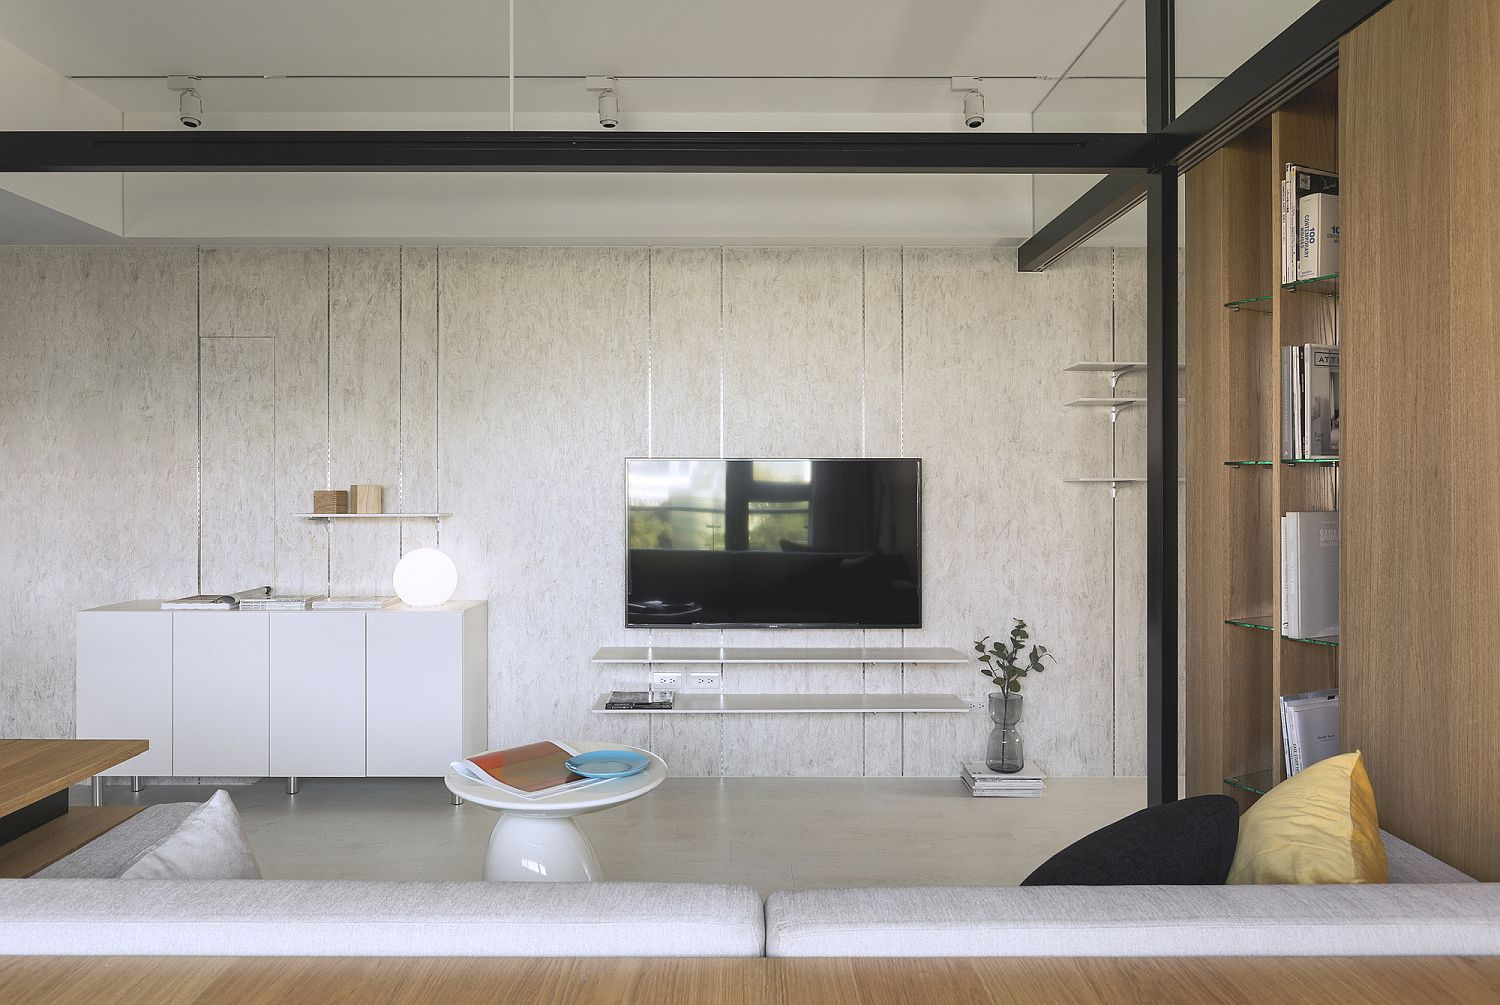 Concrete wall for the living room gives it a smart and sturdy backdrop